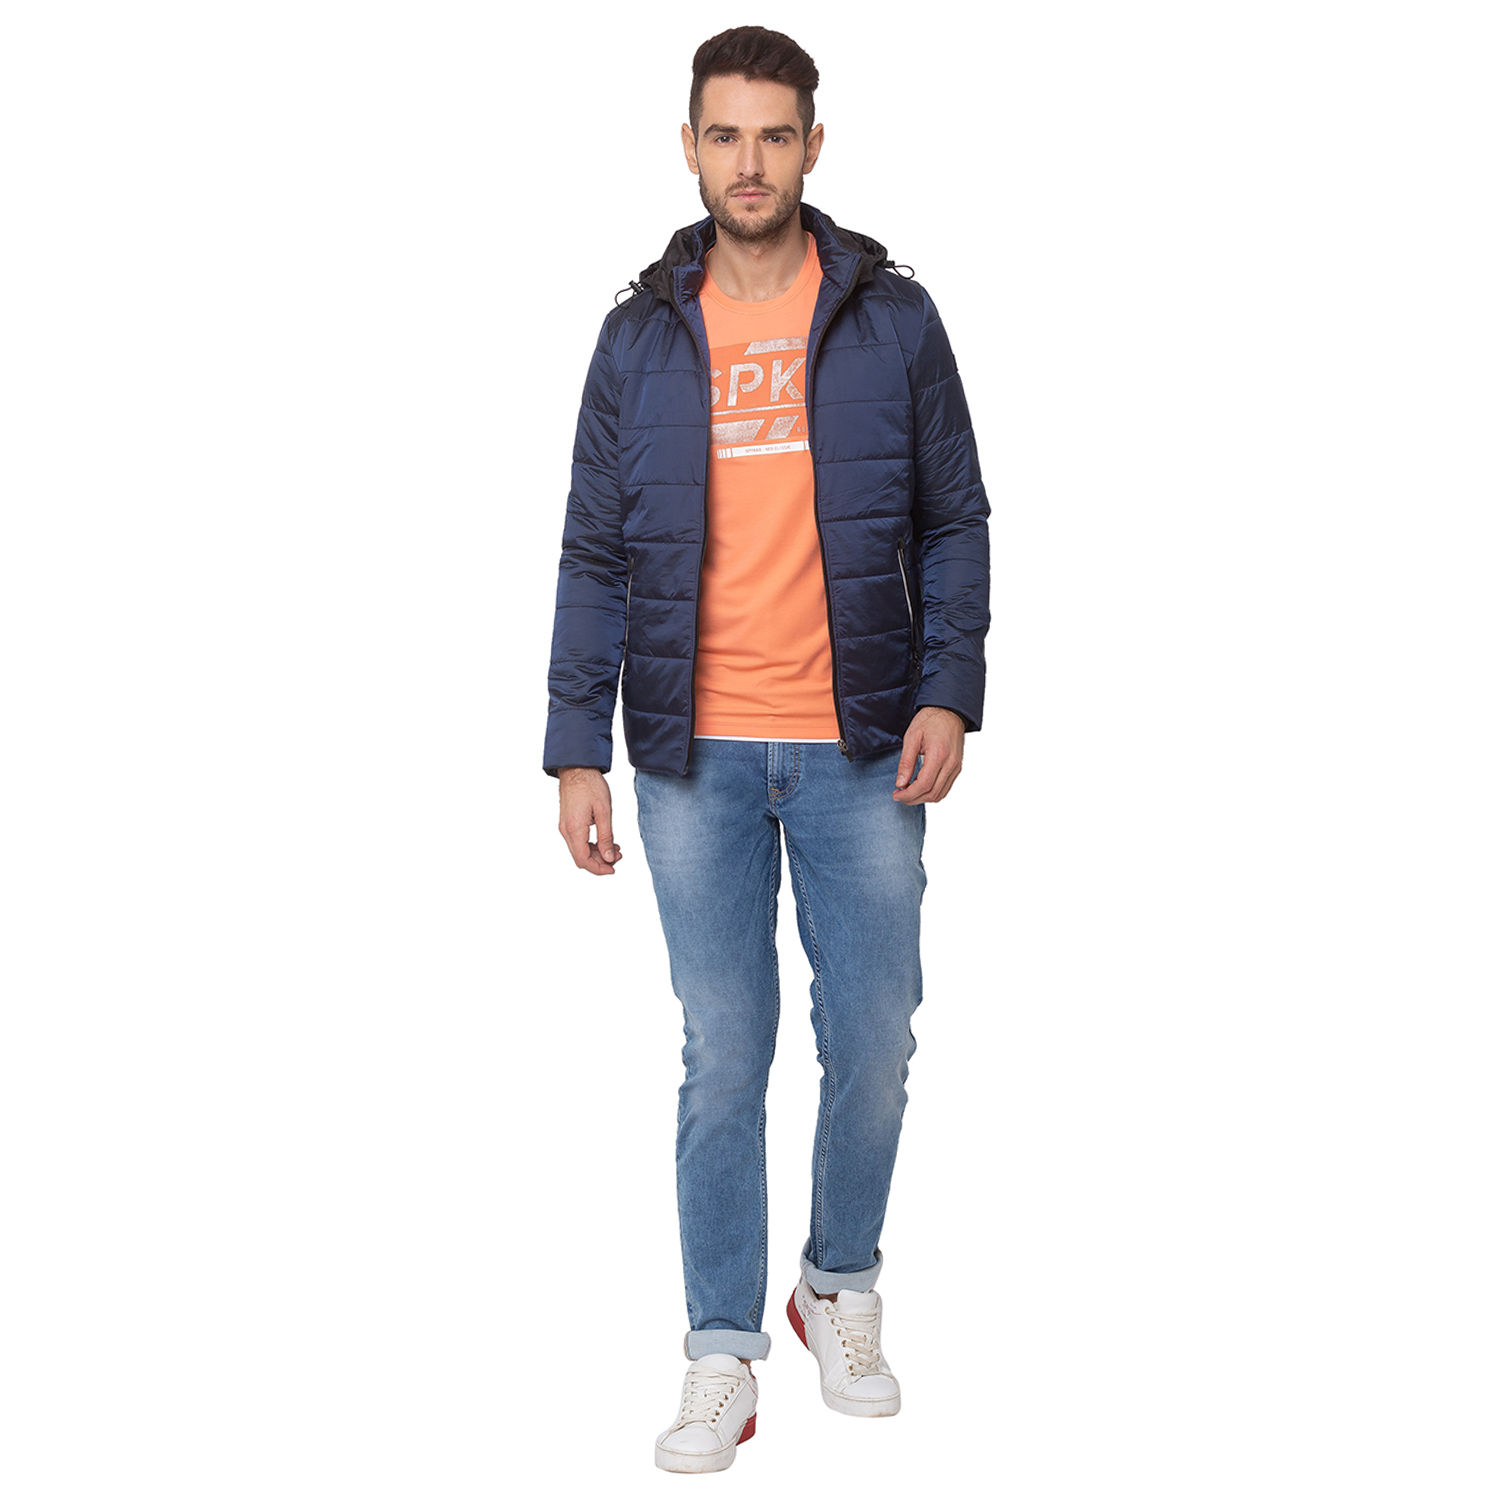 SPYKAR CARBON BLUE NYLON STRAIGHT FIT JACKETS